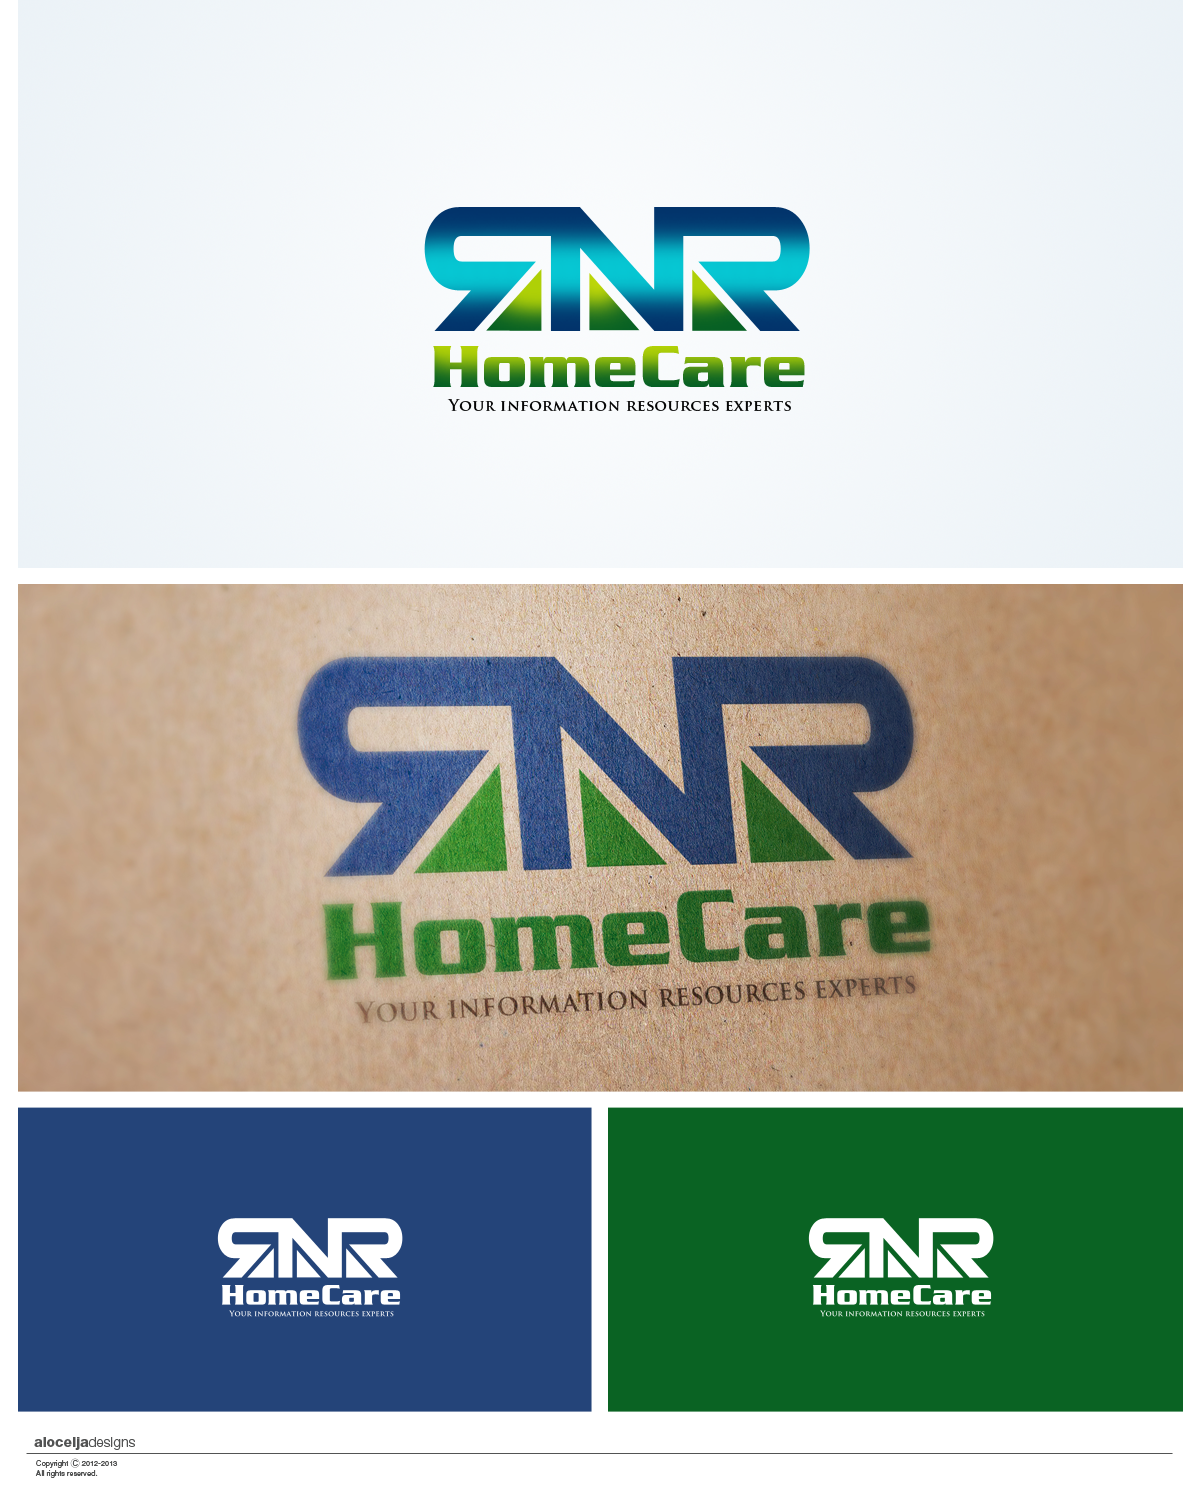 Logo Design by alocelja - Entry No. 48 in the Logo Design Contest Imaginative Logo Design for RNR HomeCare.